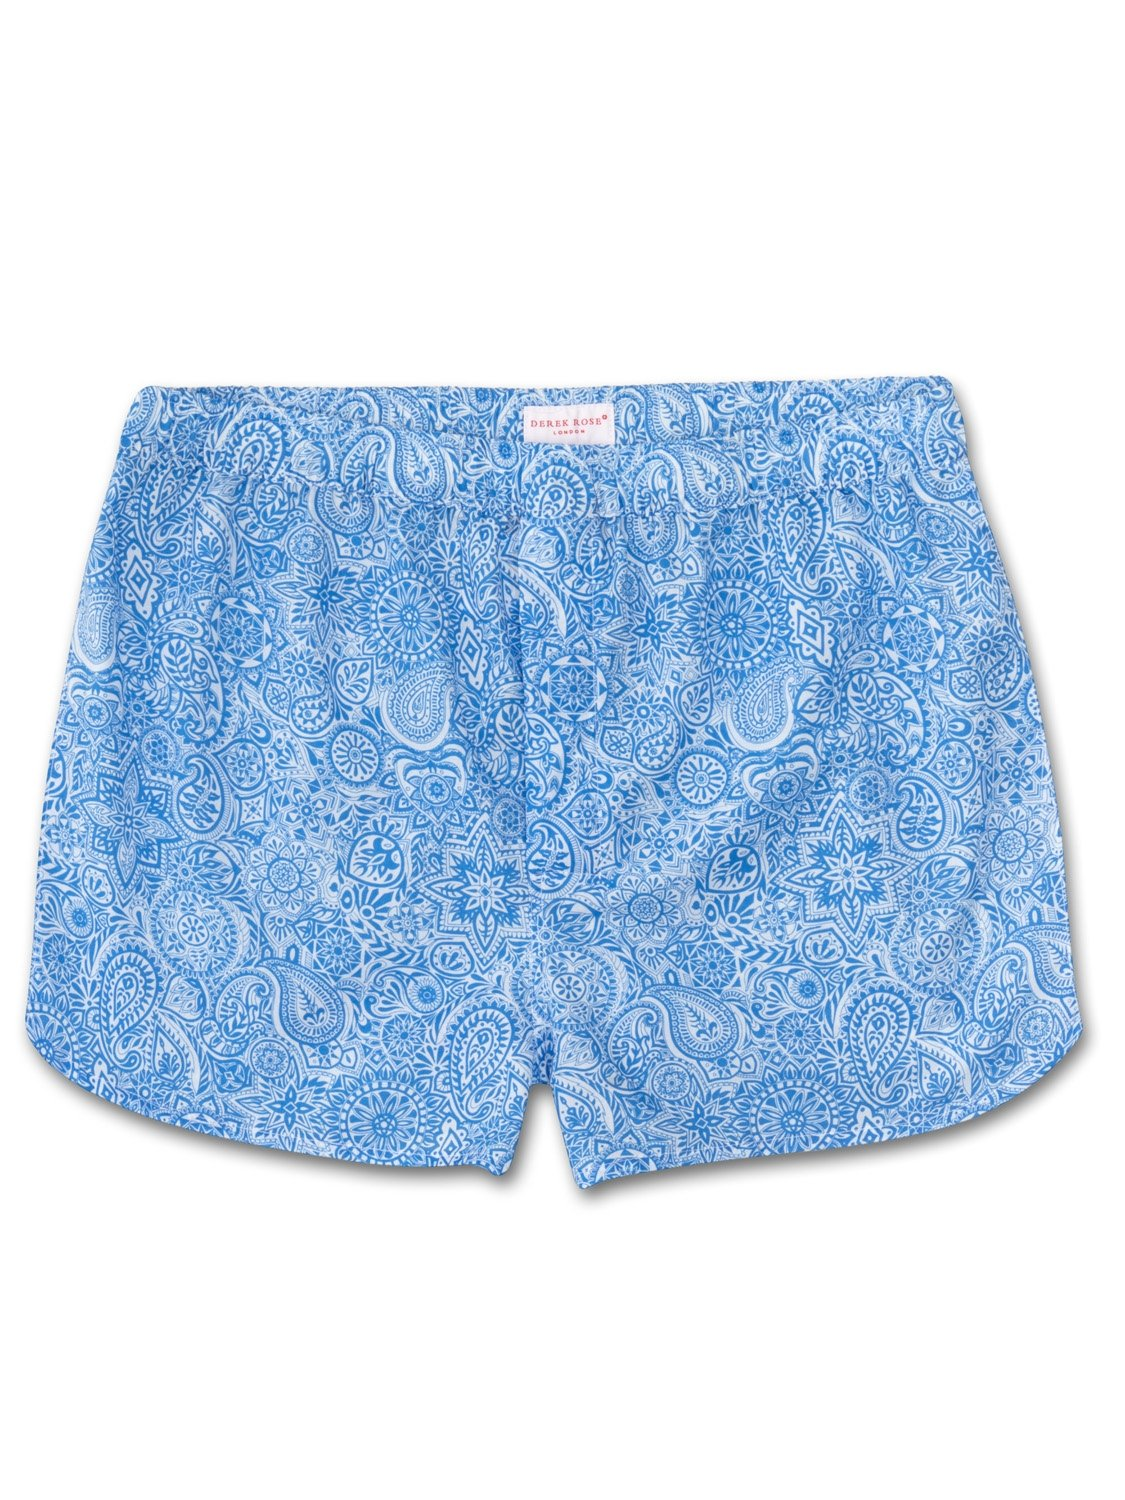 Men's Modern Fit Boxer Shorts Ledbury 6 Cotton Batiste Blue